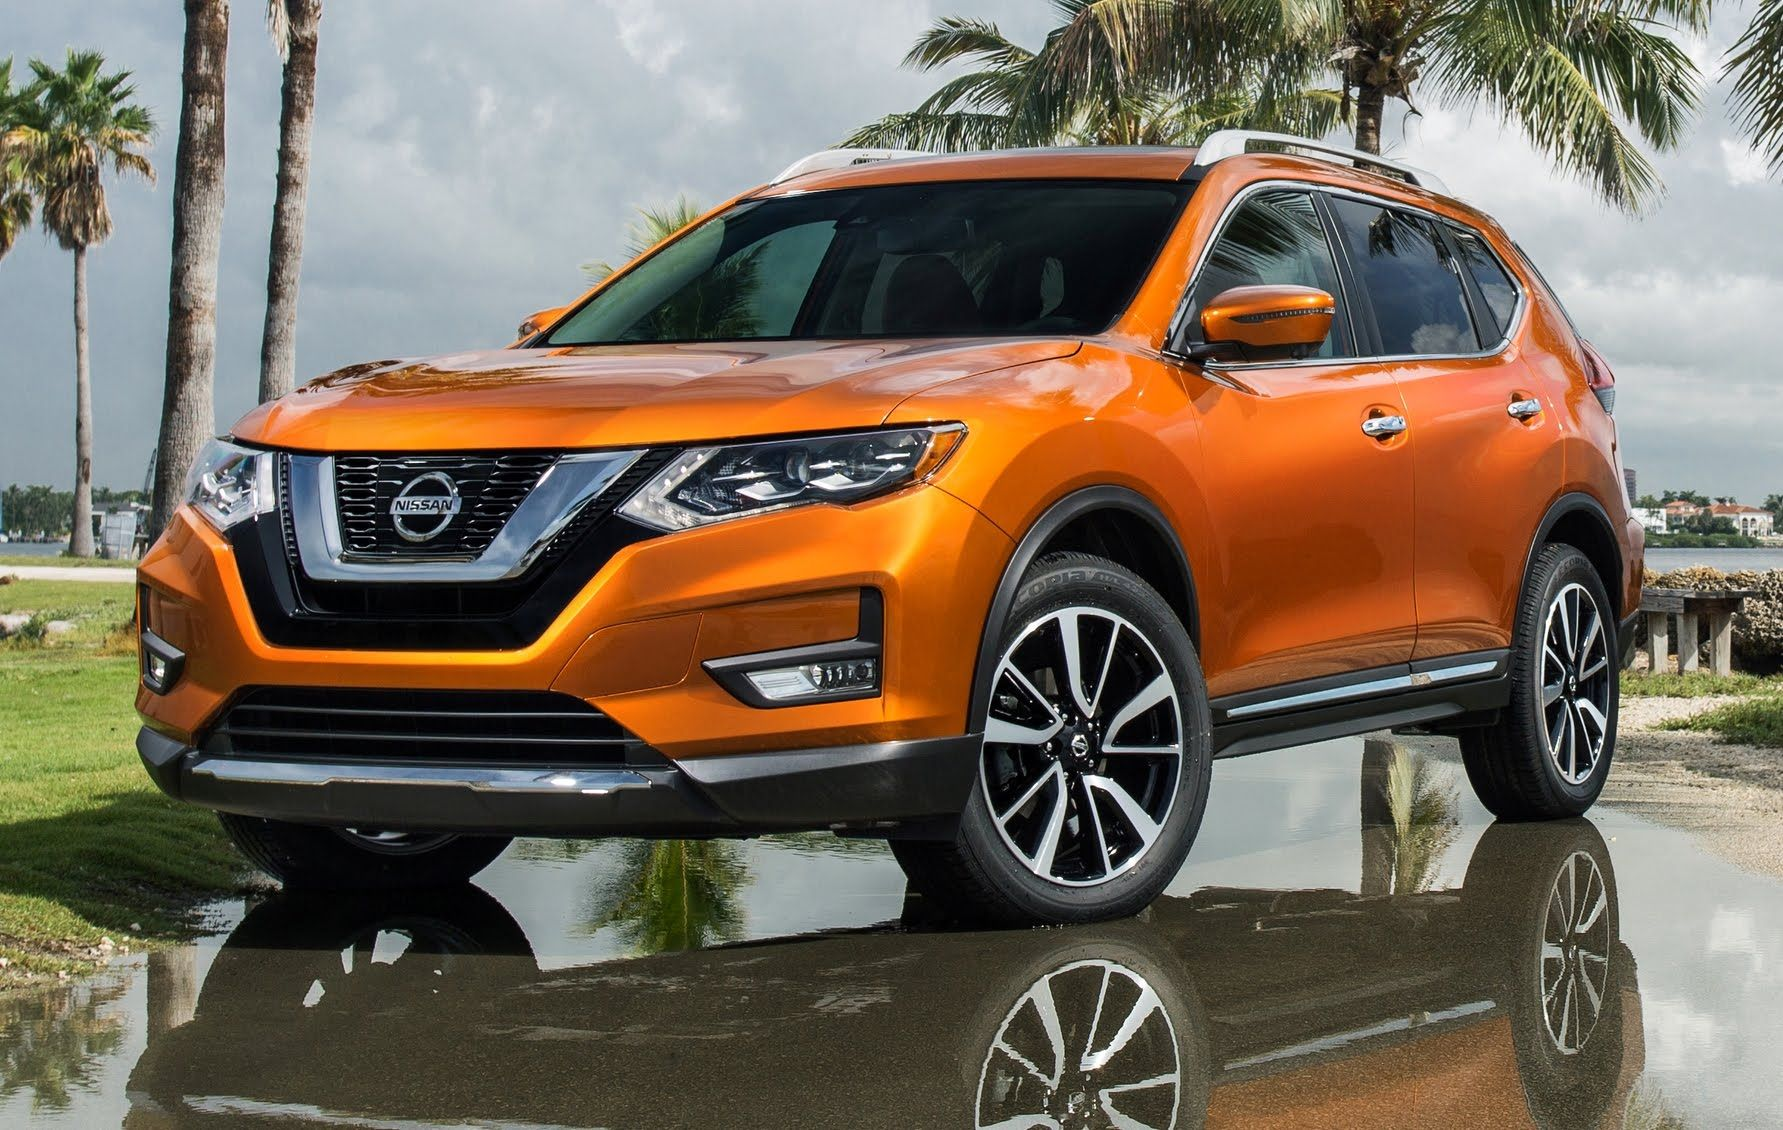 Nissan Rogue Owners Manual: Heater and Air Conditioner (manual)(if so equipped)